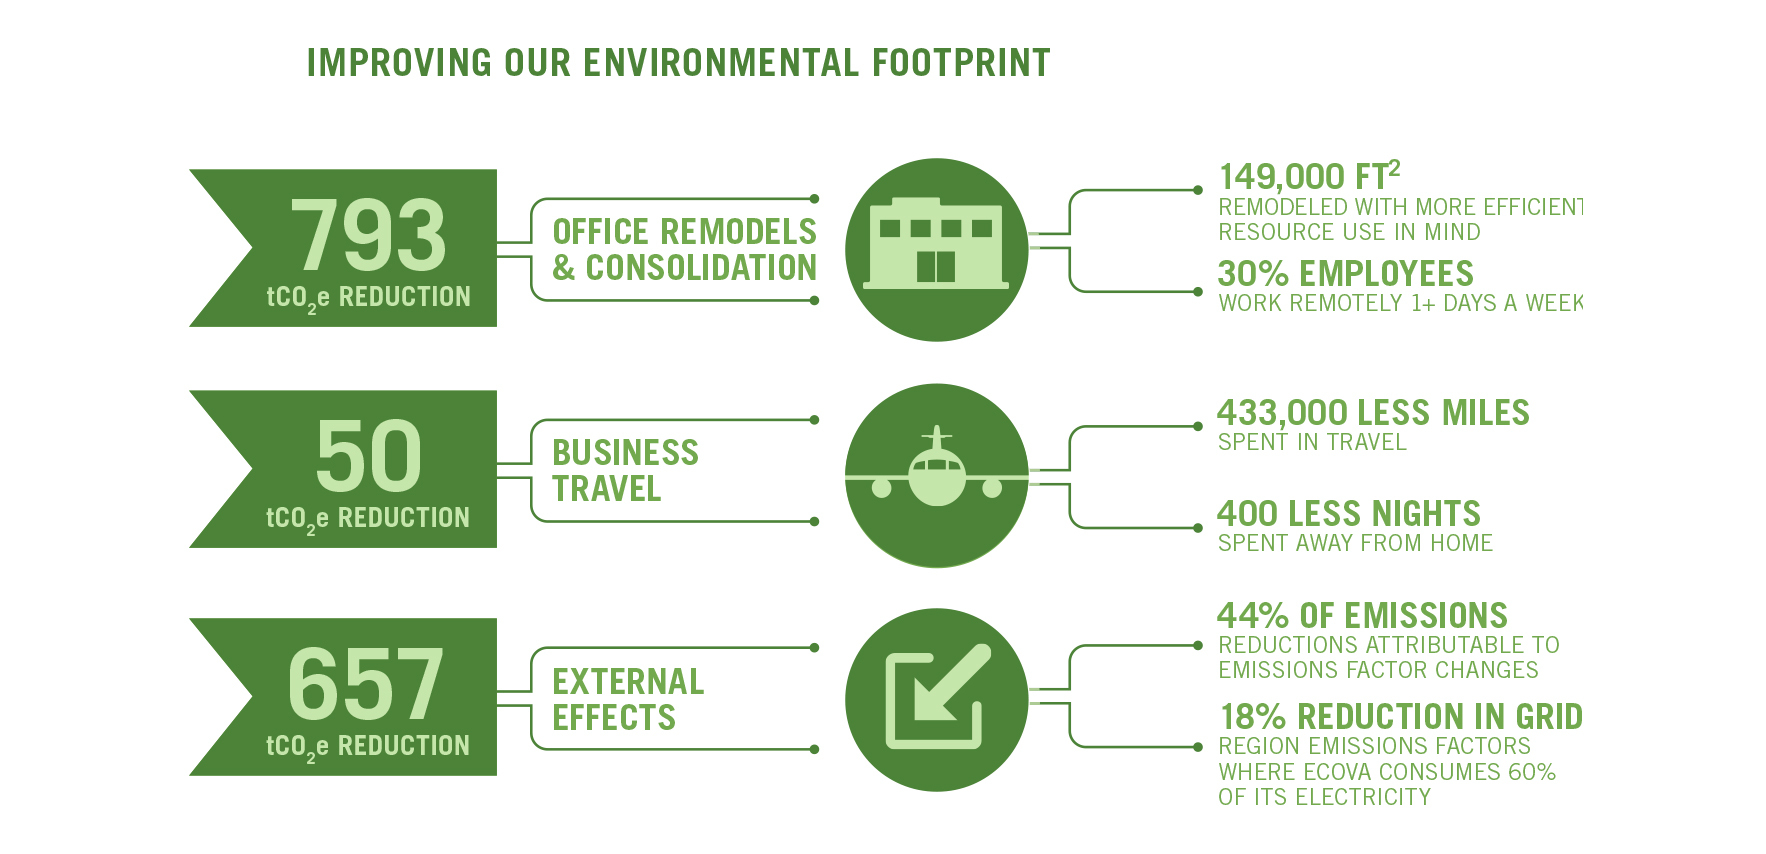 Ecova Publishes 2015 Corporate Responsibility Report